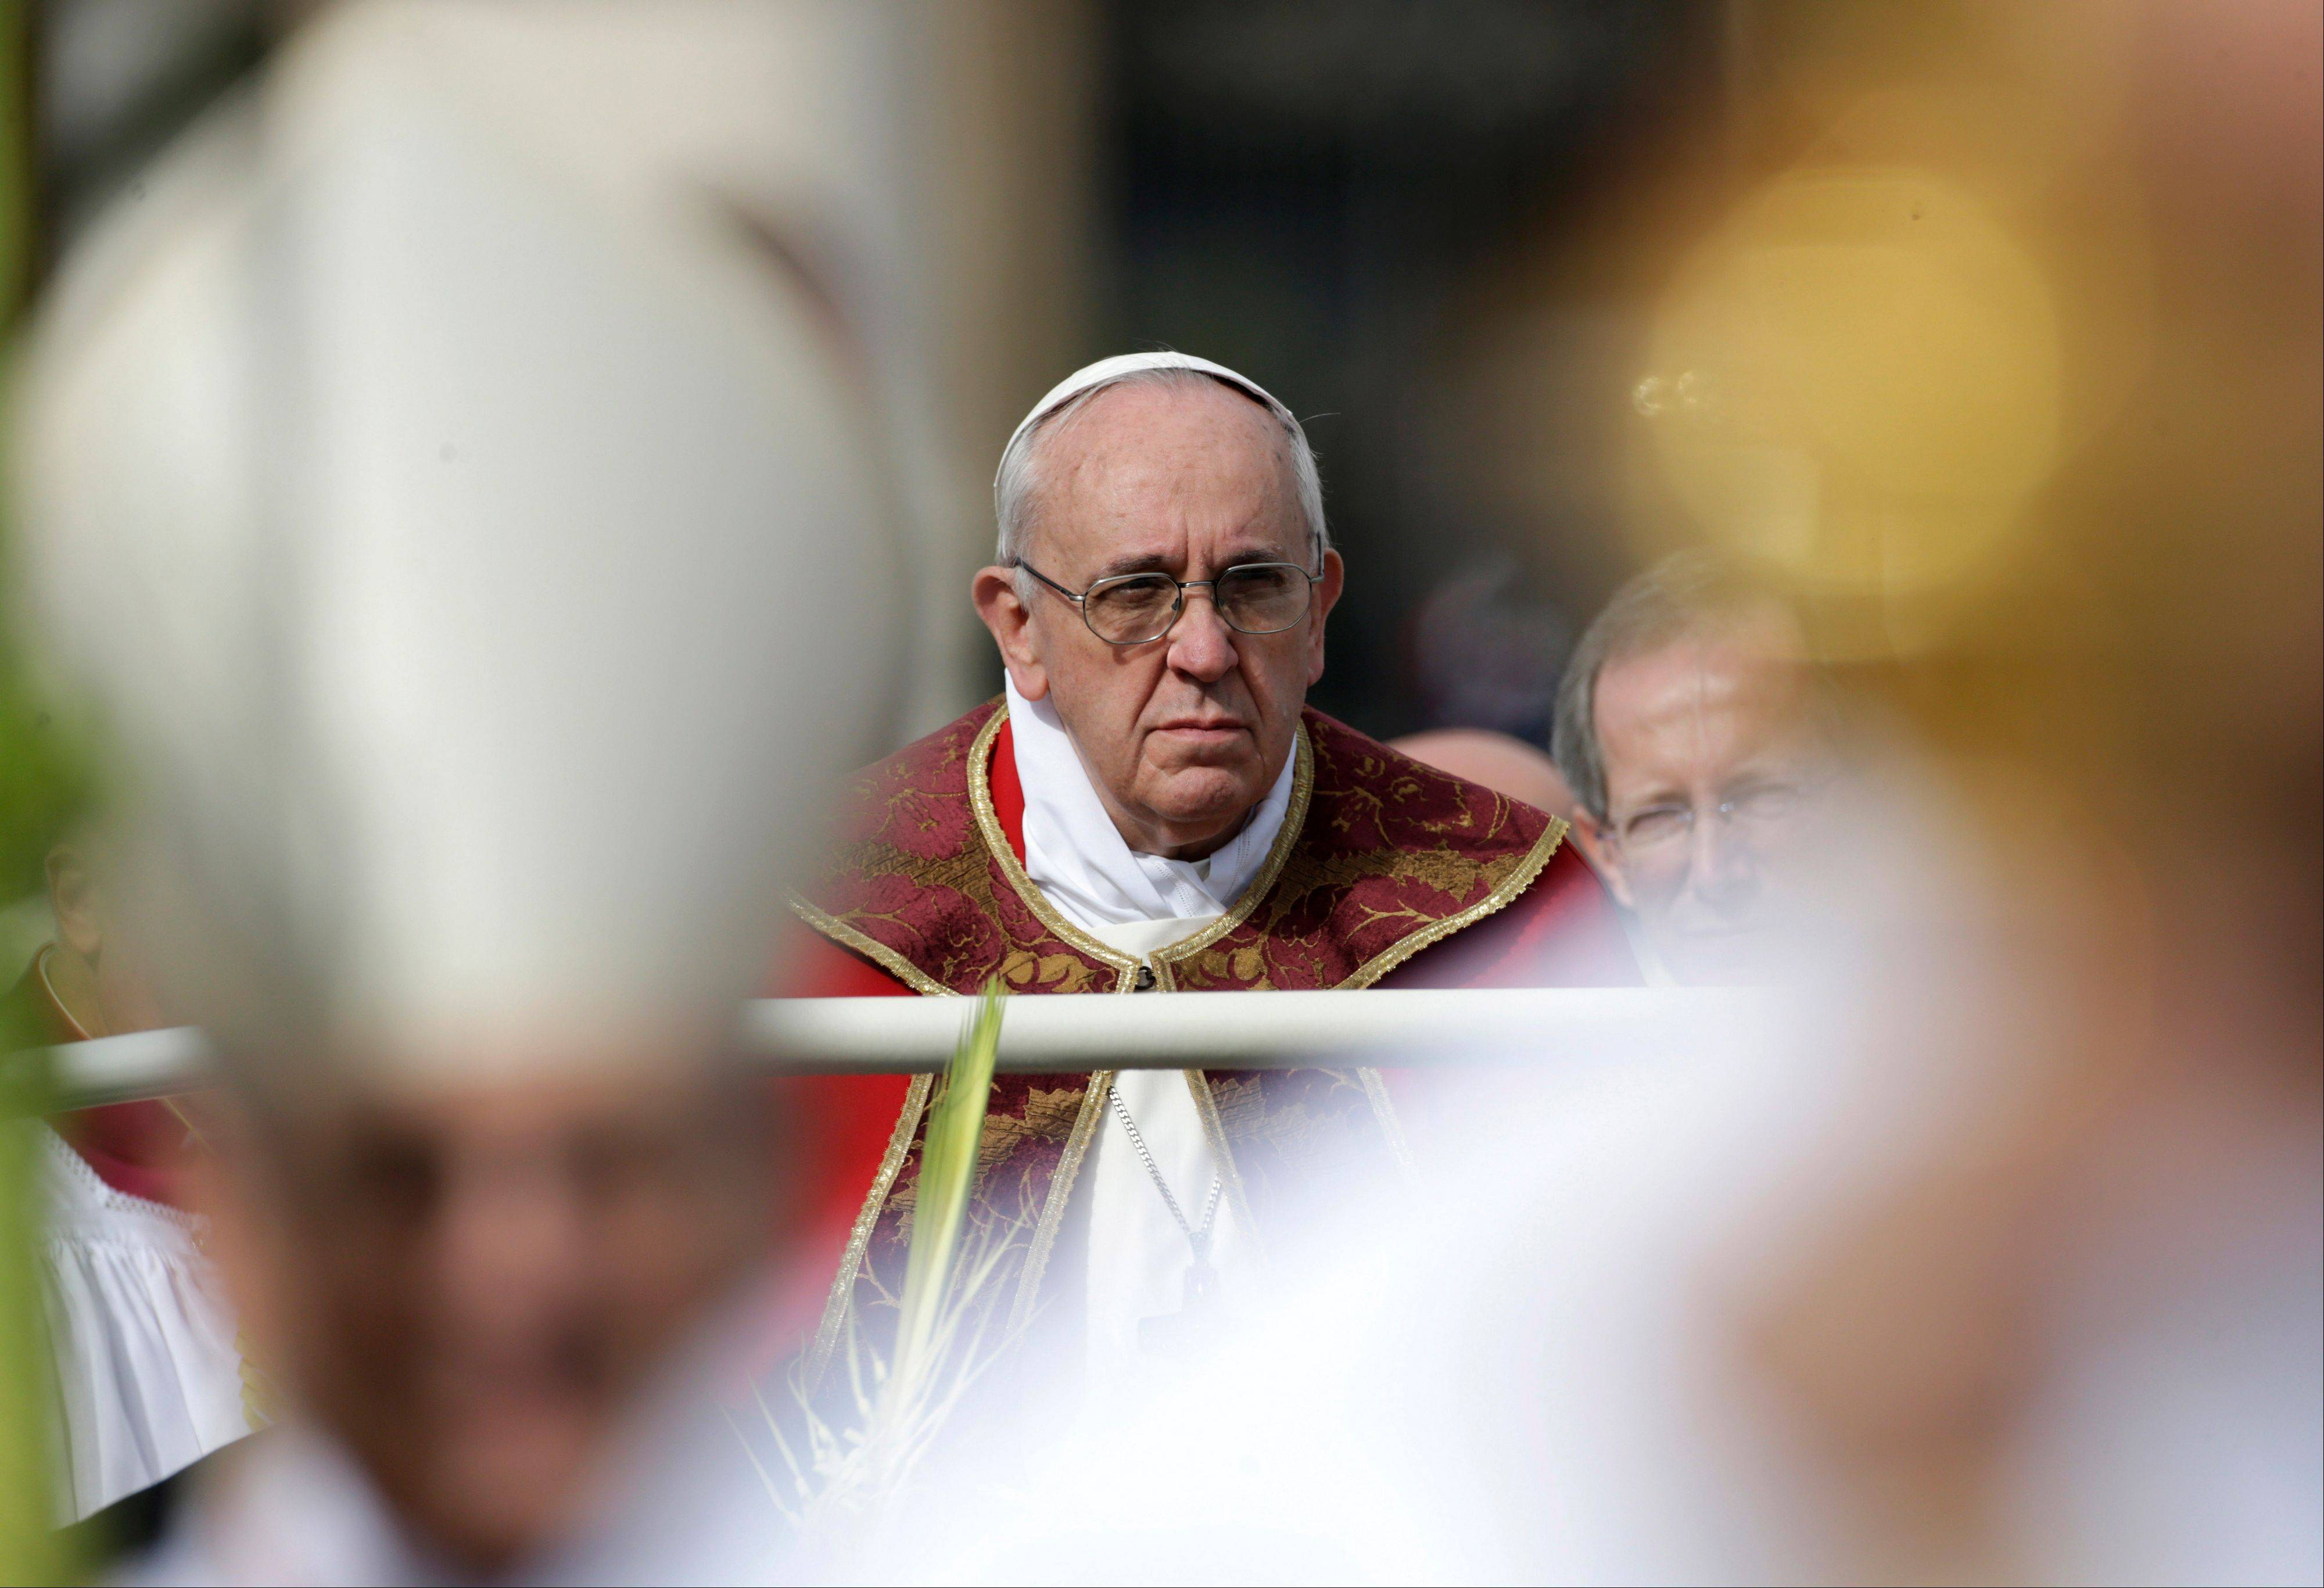 Pope Francis arrives to celebrate Mass on Palm Sunday in St. Peter's Square.